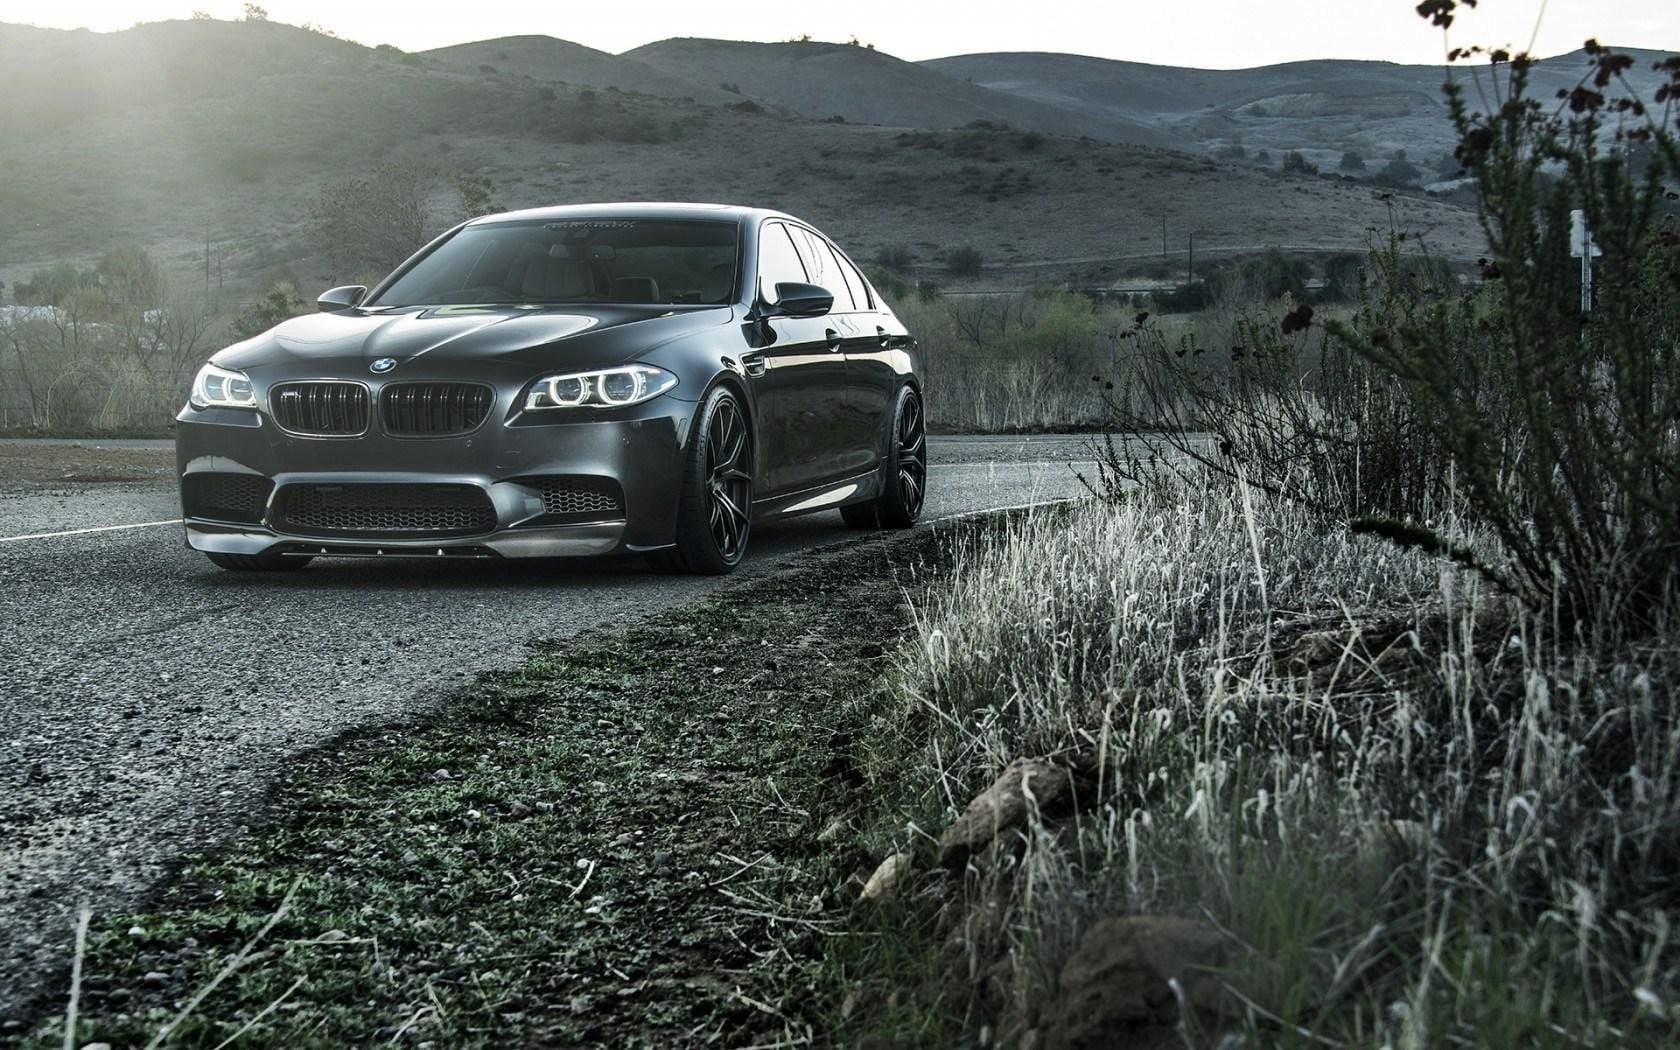 36 BMW M5 F10 wallpapers HD High Quality Download 1680x1050